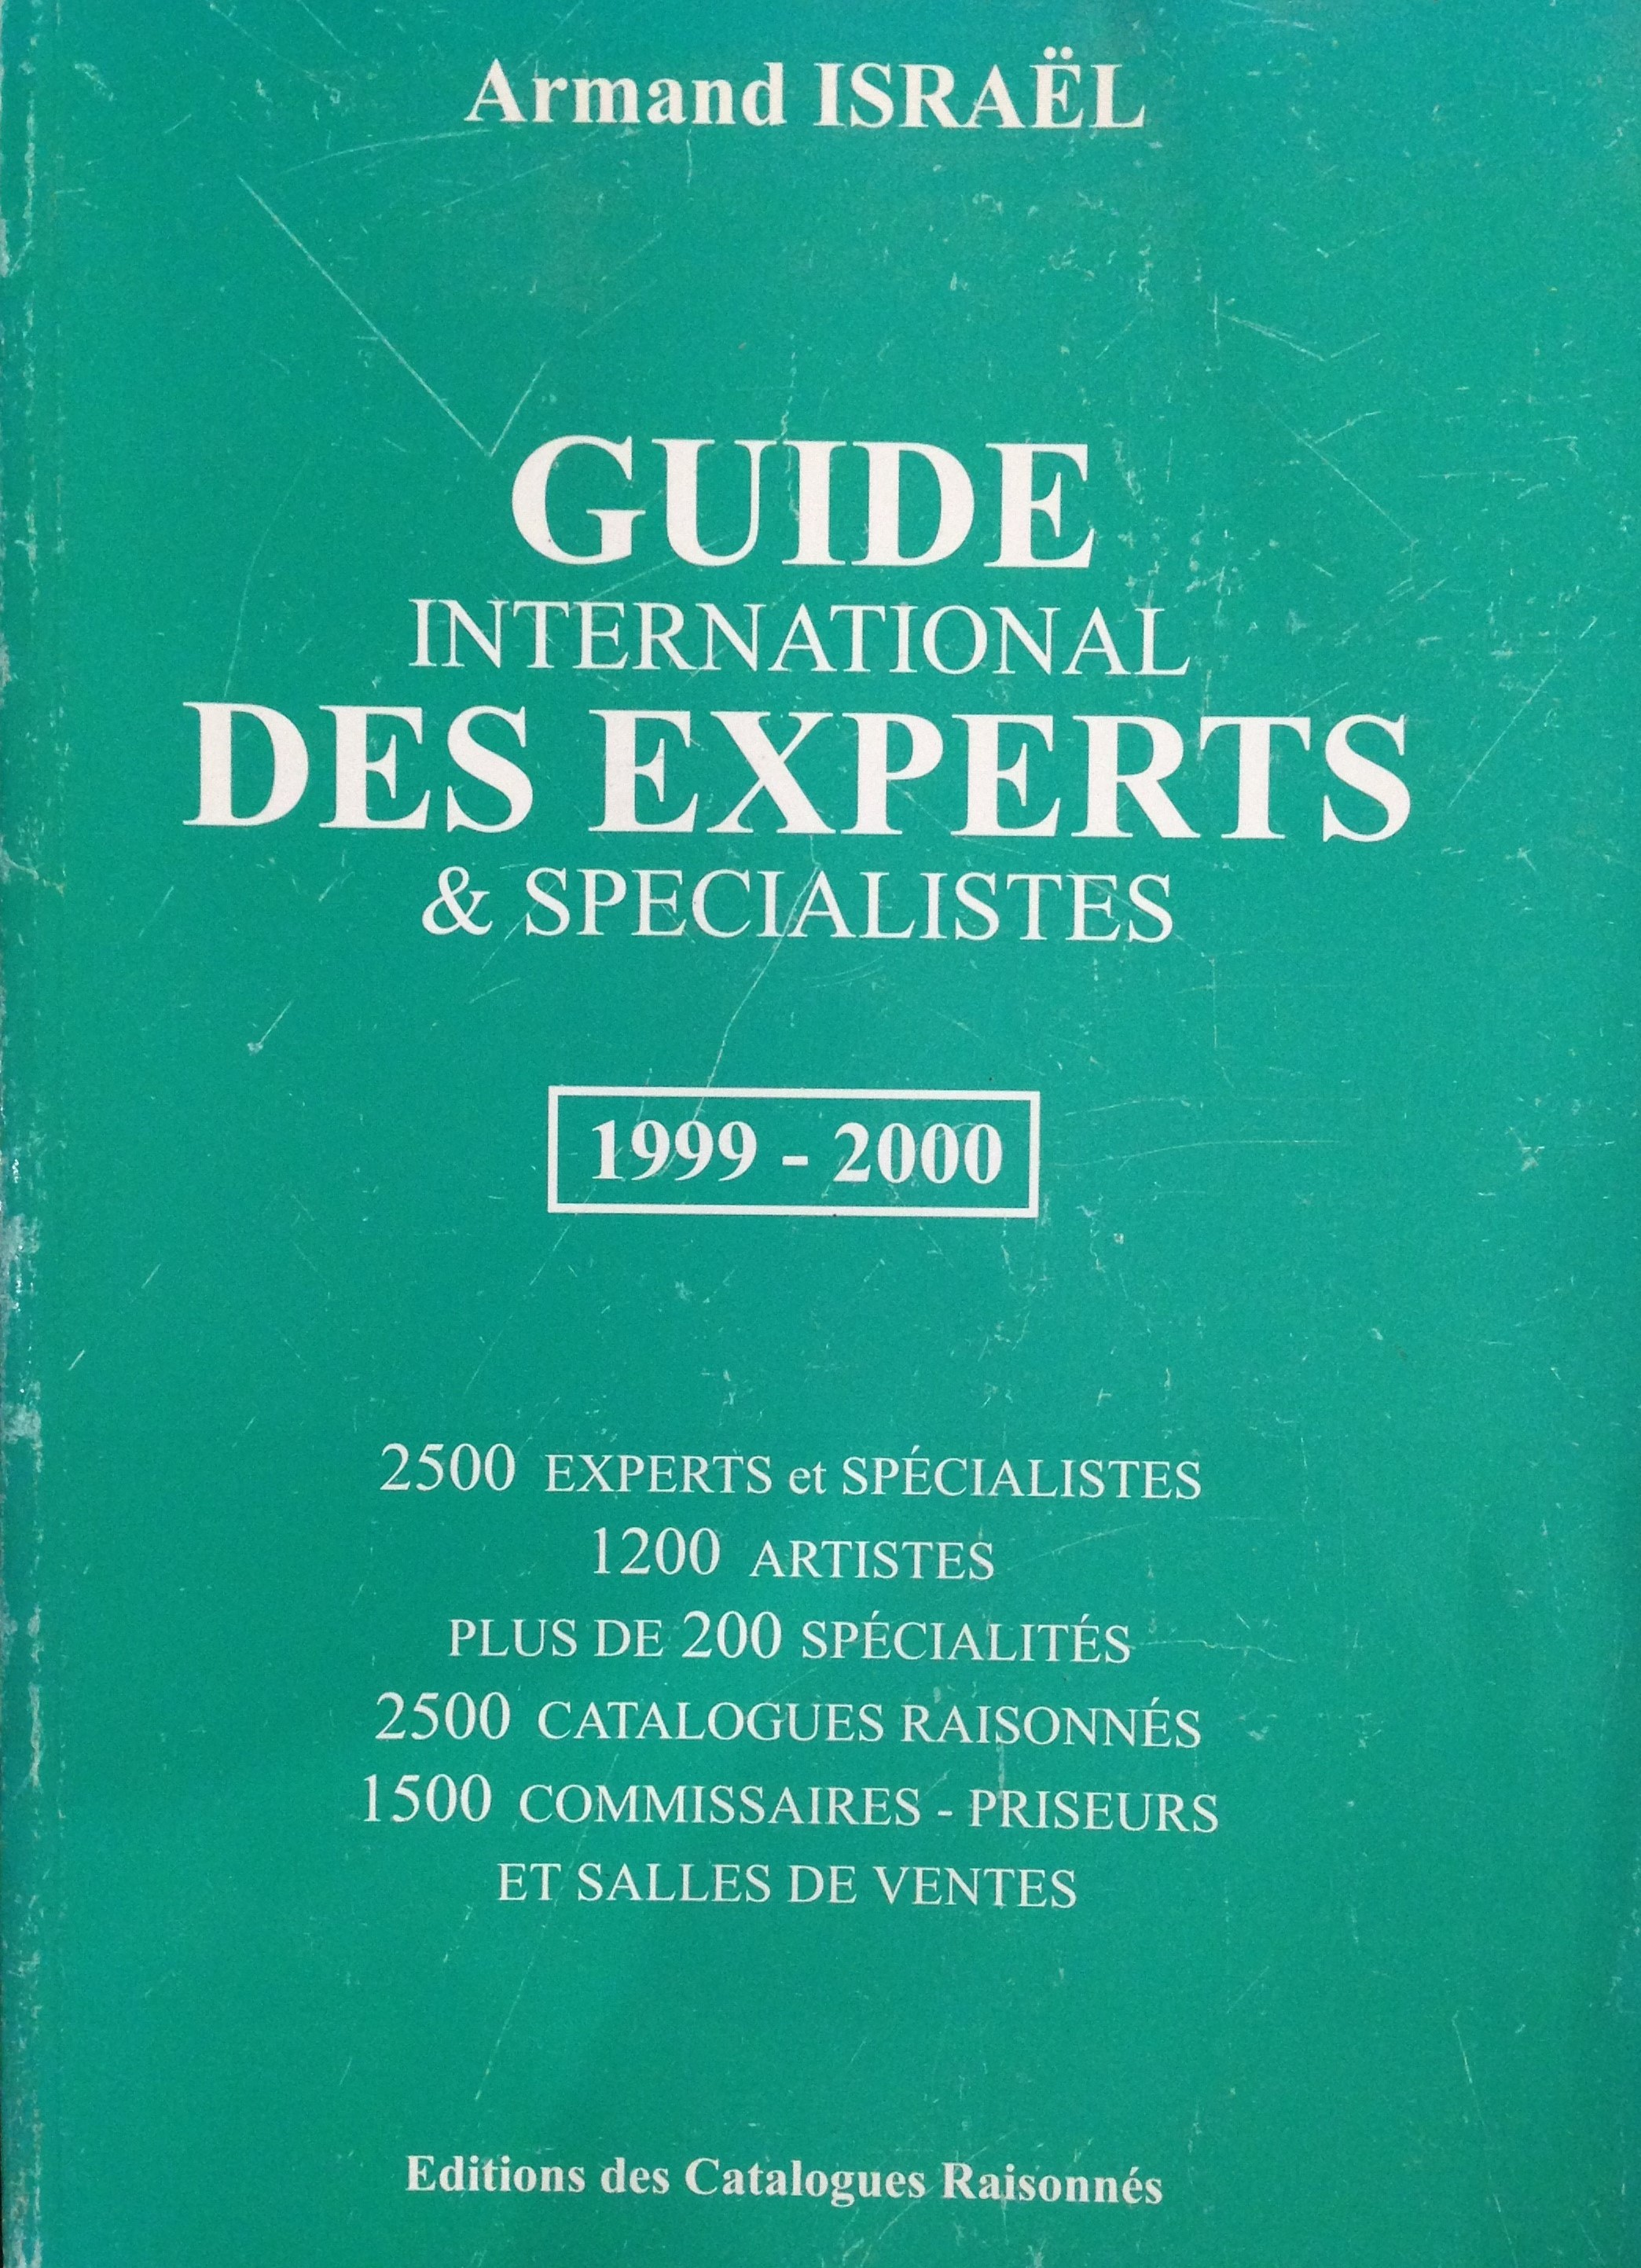 Guide international des experts et spécialistes 1999-2000